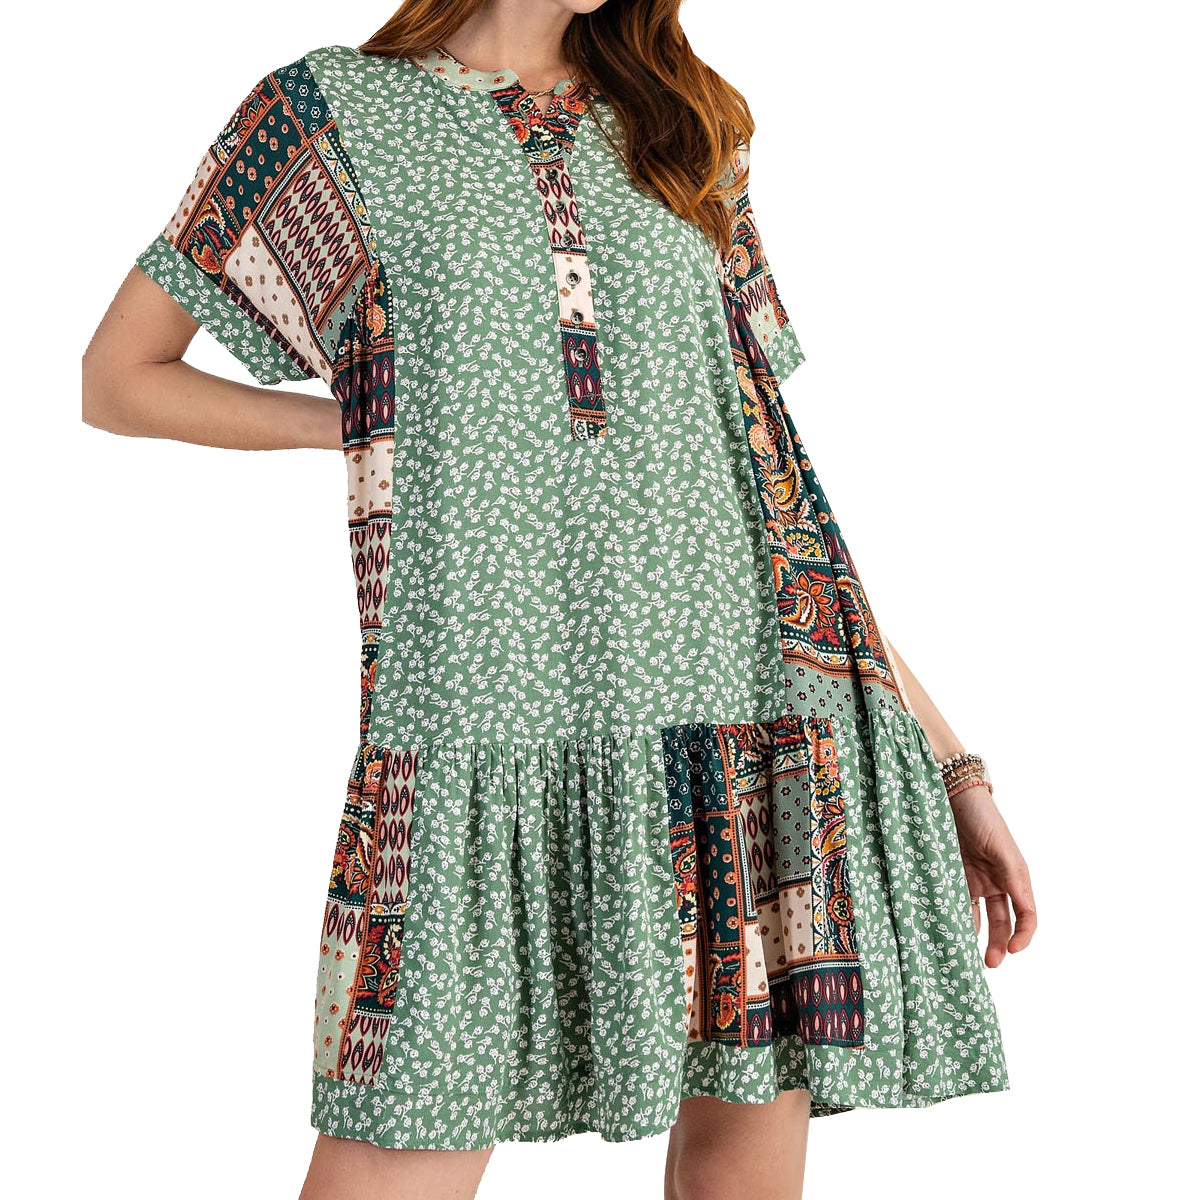 Easel Women's I'm the One Printed Tunic Dress - Sage